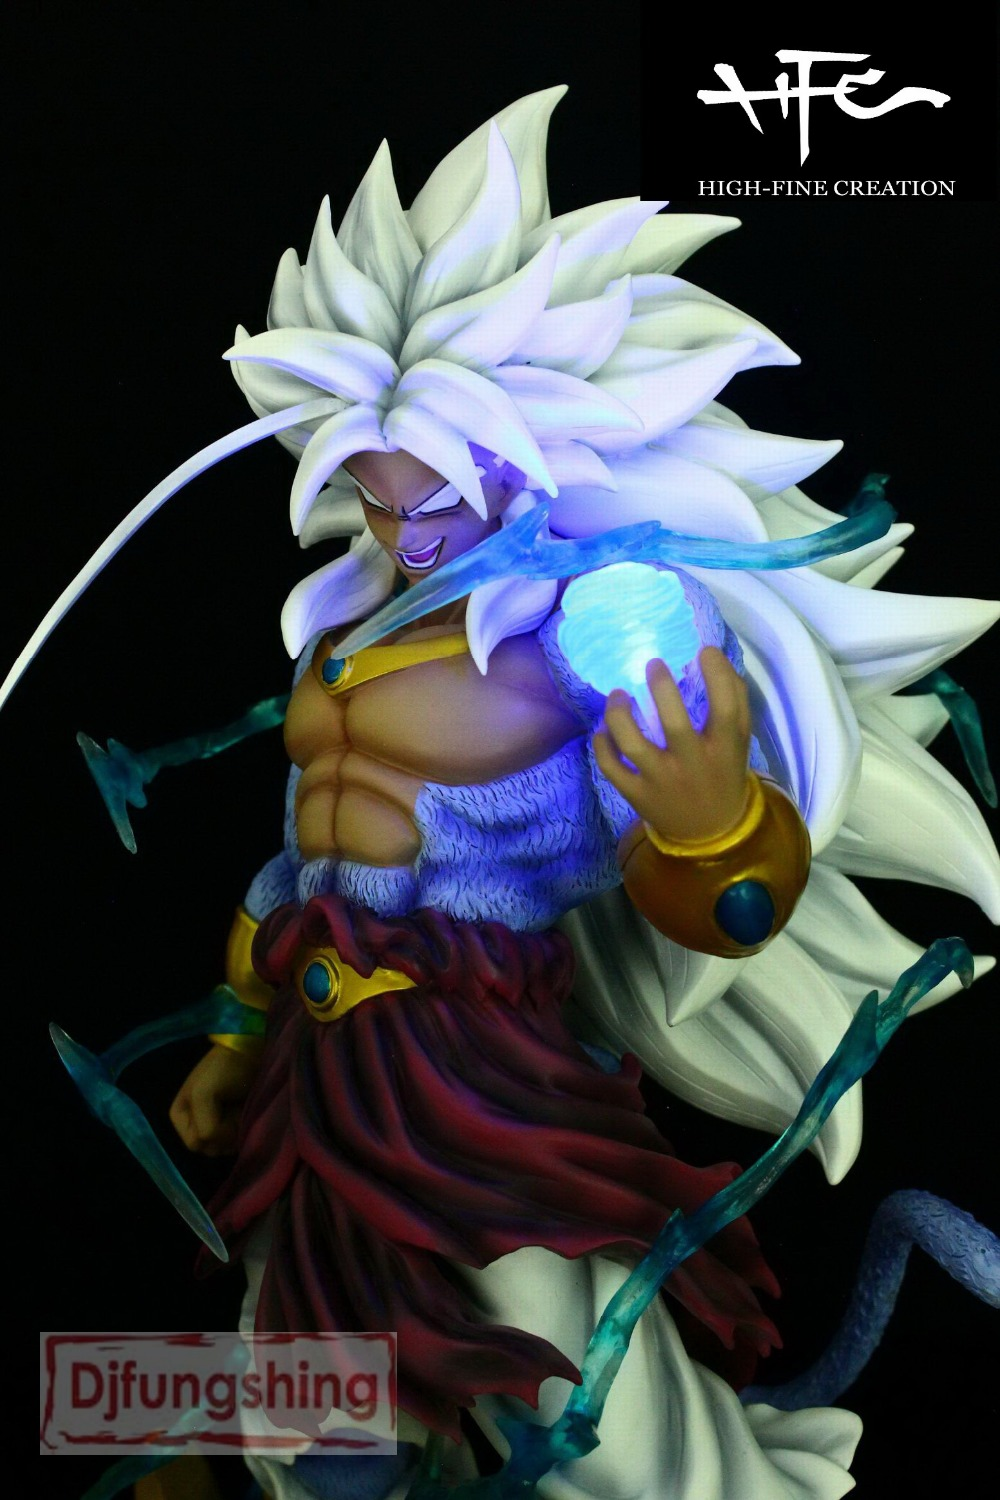 MODEL FANS HFC DRAGON BALL Z 45cm Super Saiyan 5 Brolly Broli GK resin contain led light figure toy for Collection